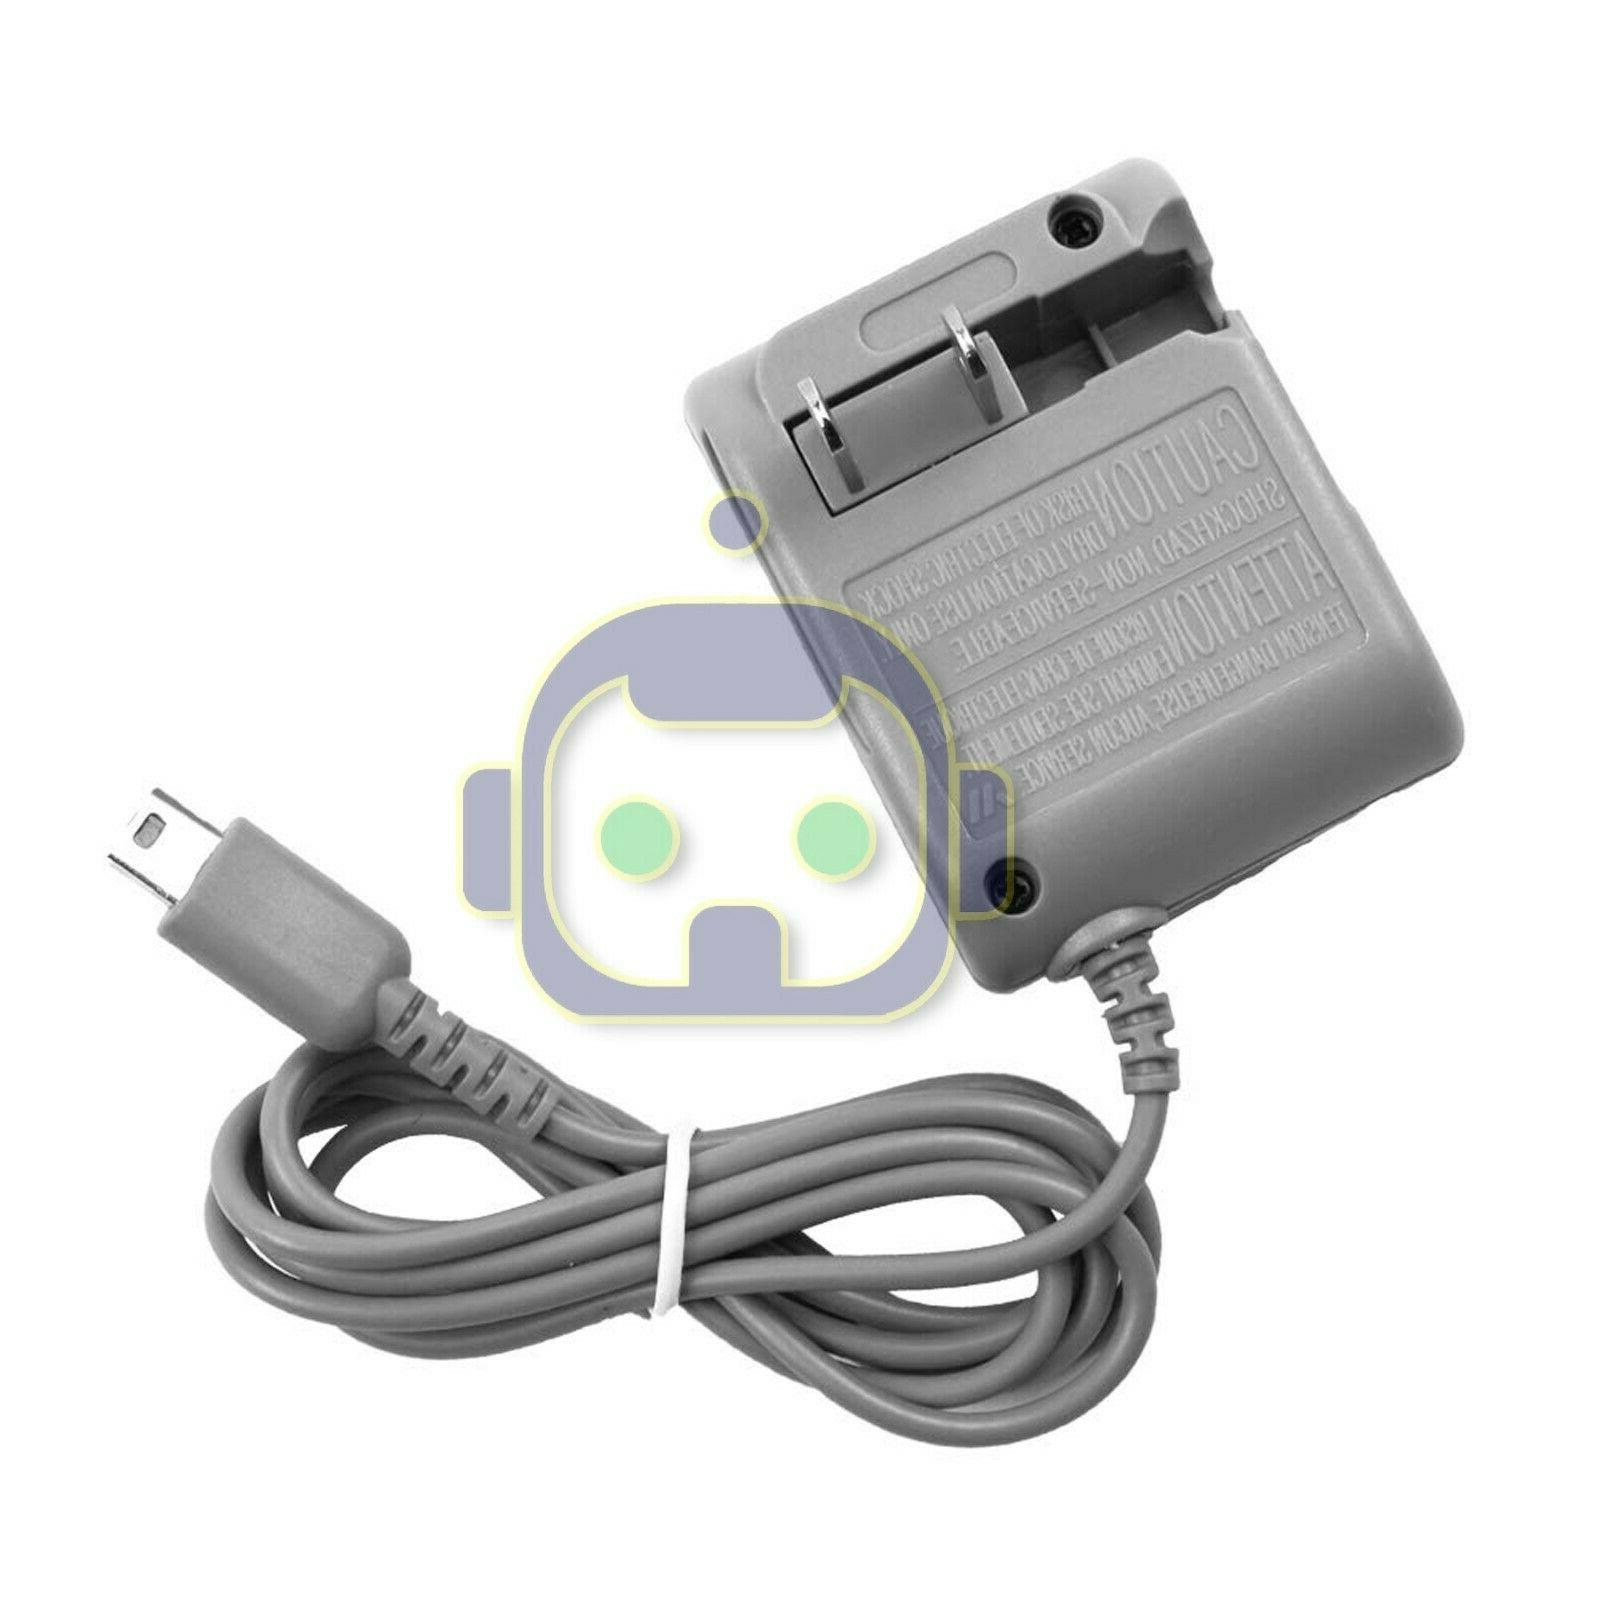 AC Adapter Wall Charger Cable lite/ NDSLs